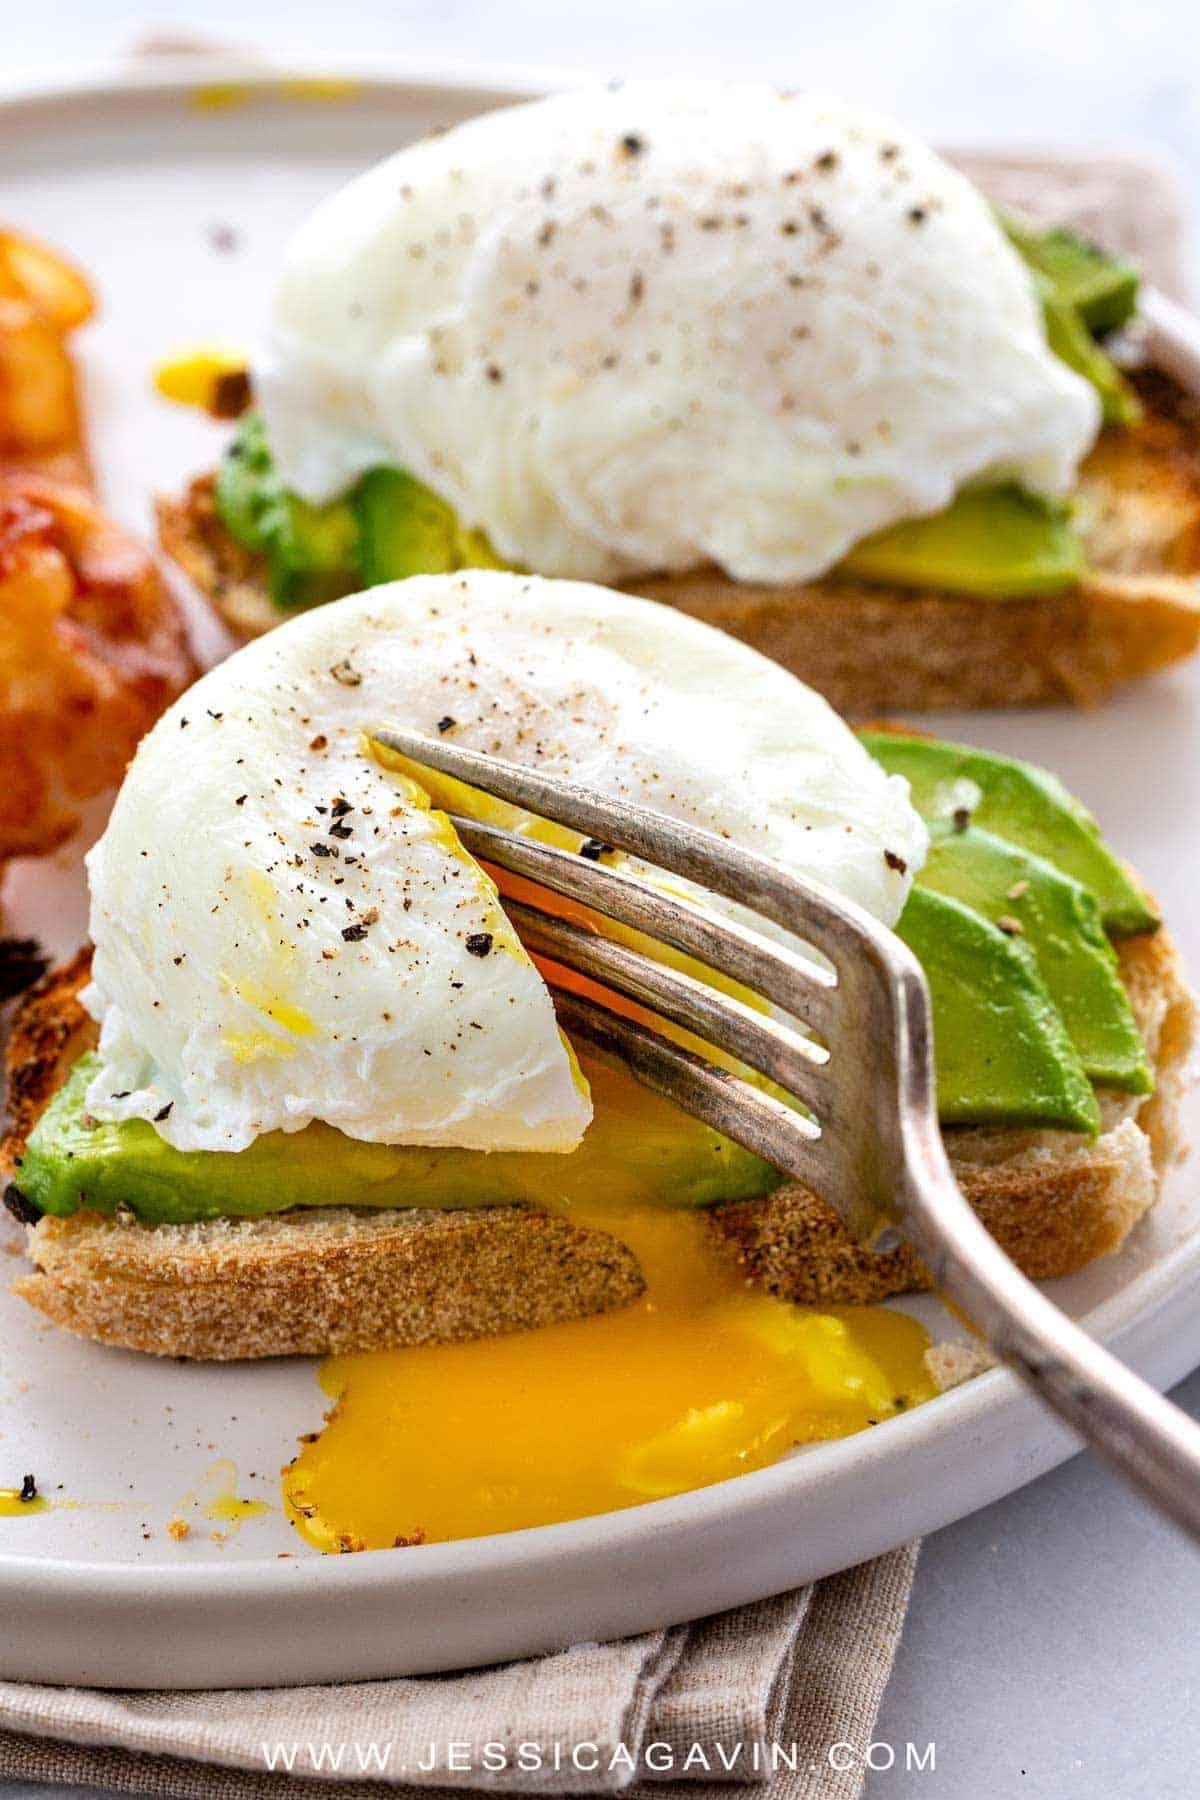 Poached eggs is a culinary technique to master that yields tender egg whites encased around a gooey golden yolk. Perfect for breakfast or to enhance a meal. #poachedeggs #breakfast #poach #eggs